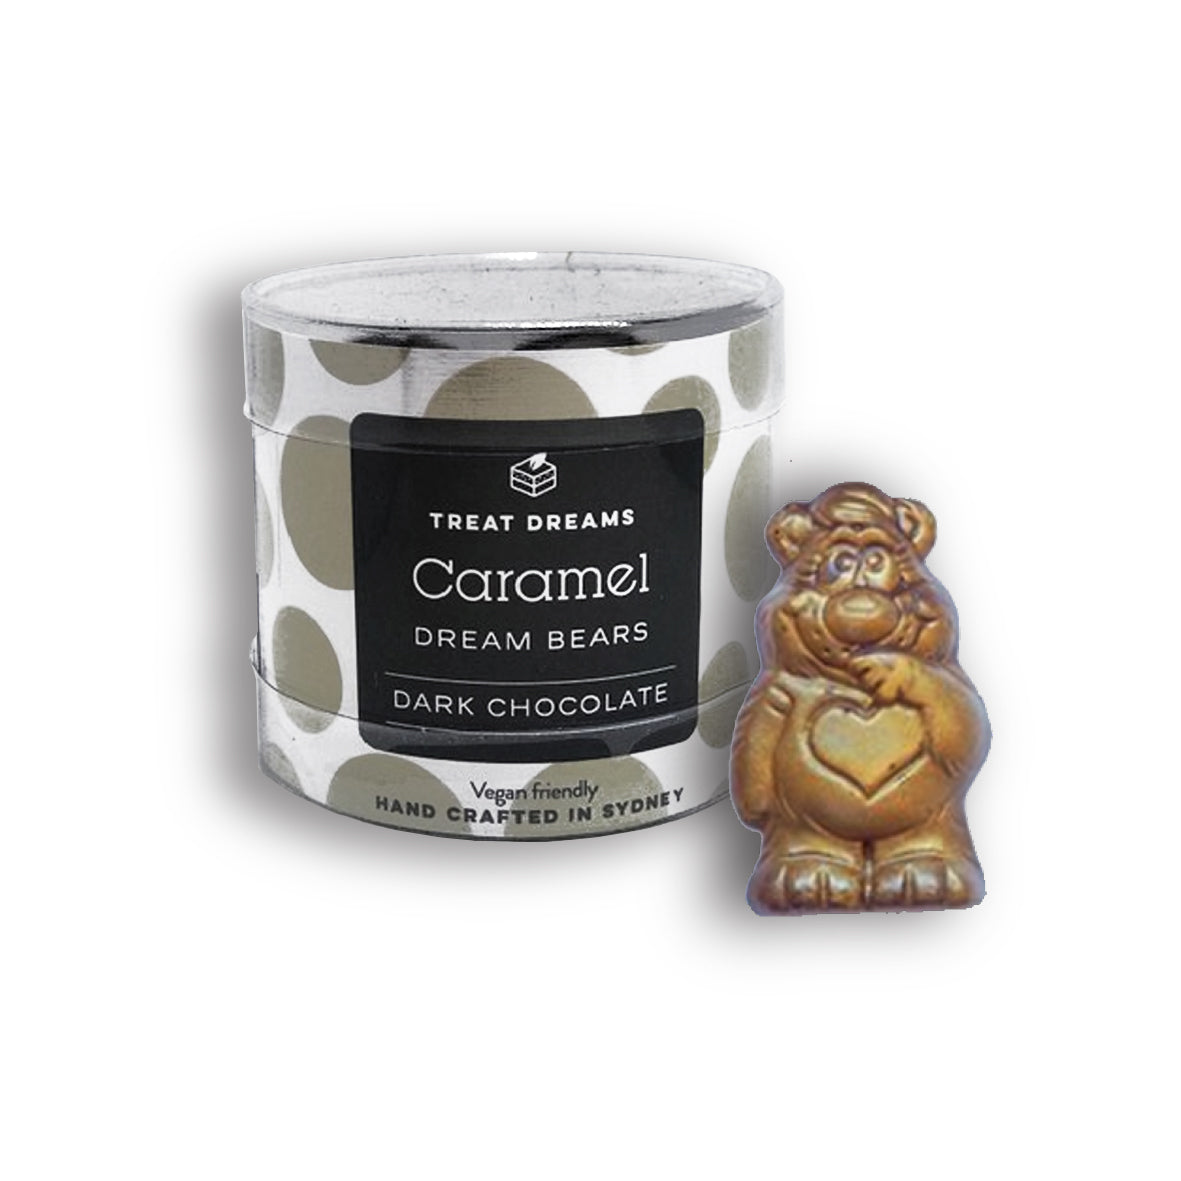 Treat Dreams - Dream Bear - Caramel Tub 10 Pack 140g